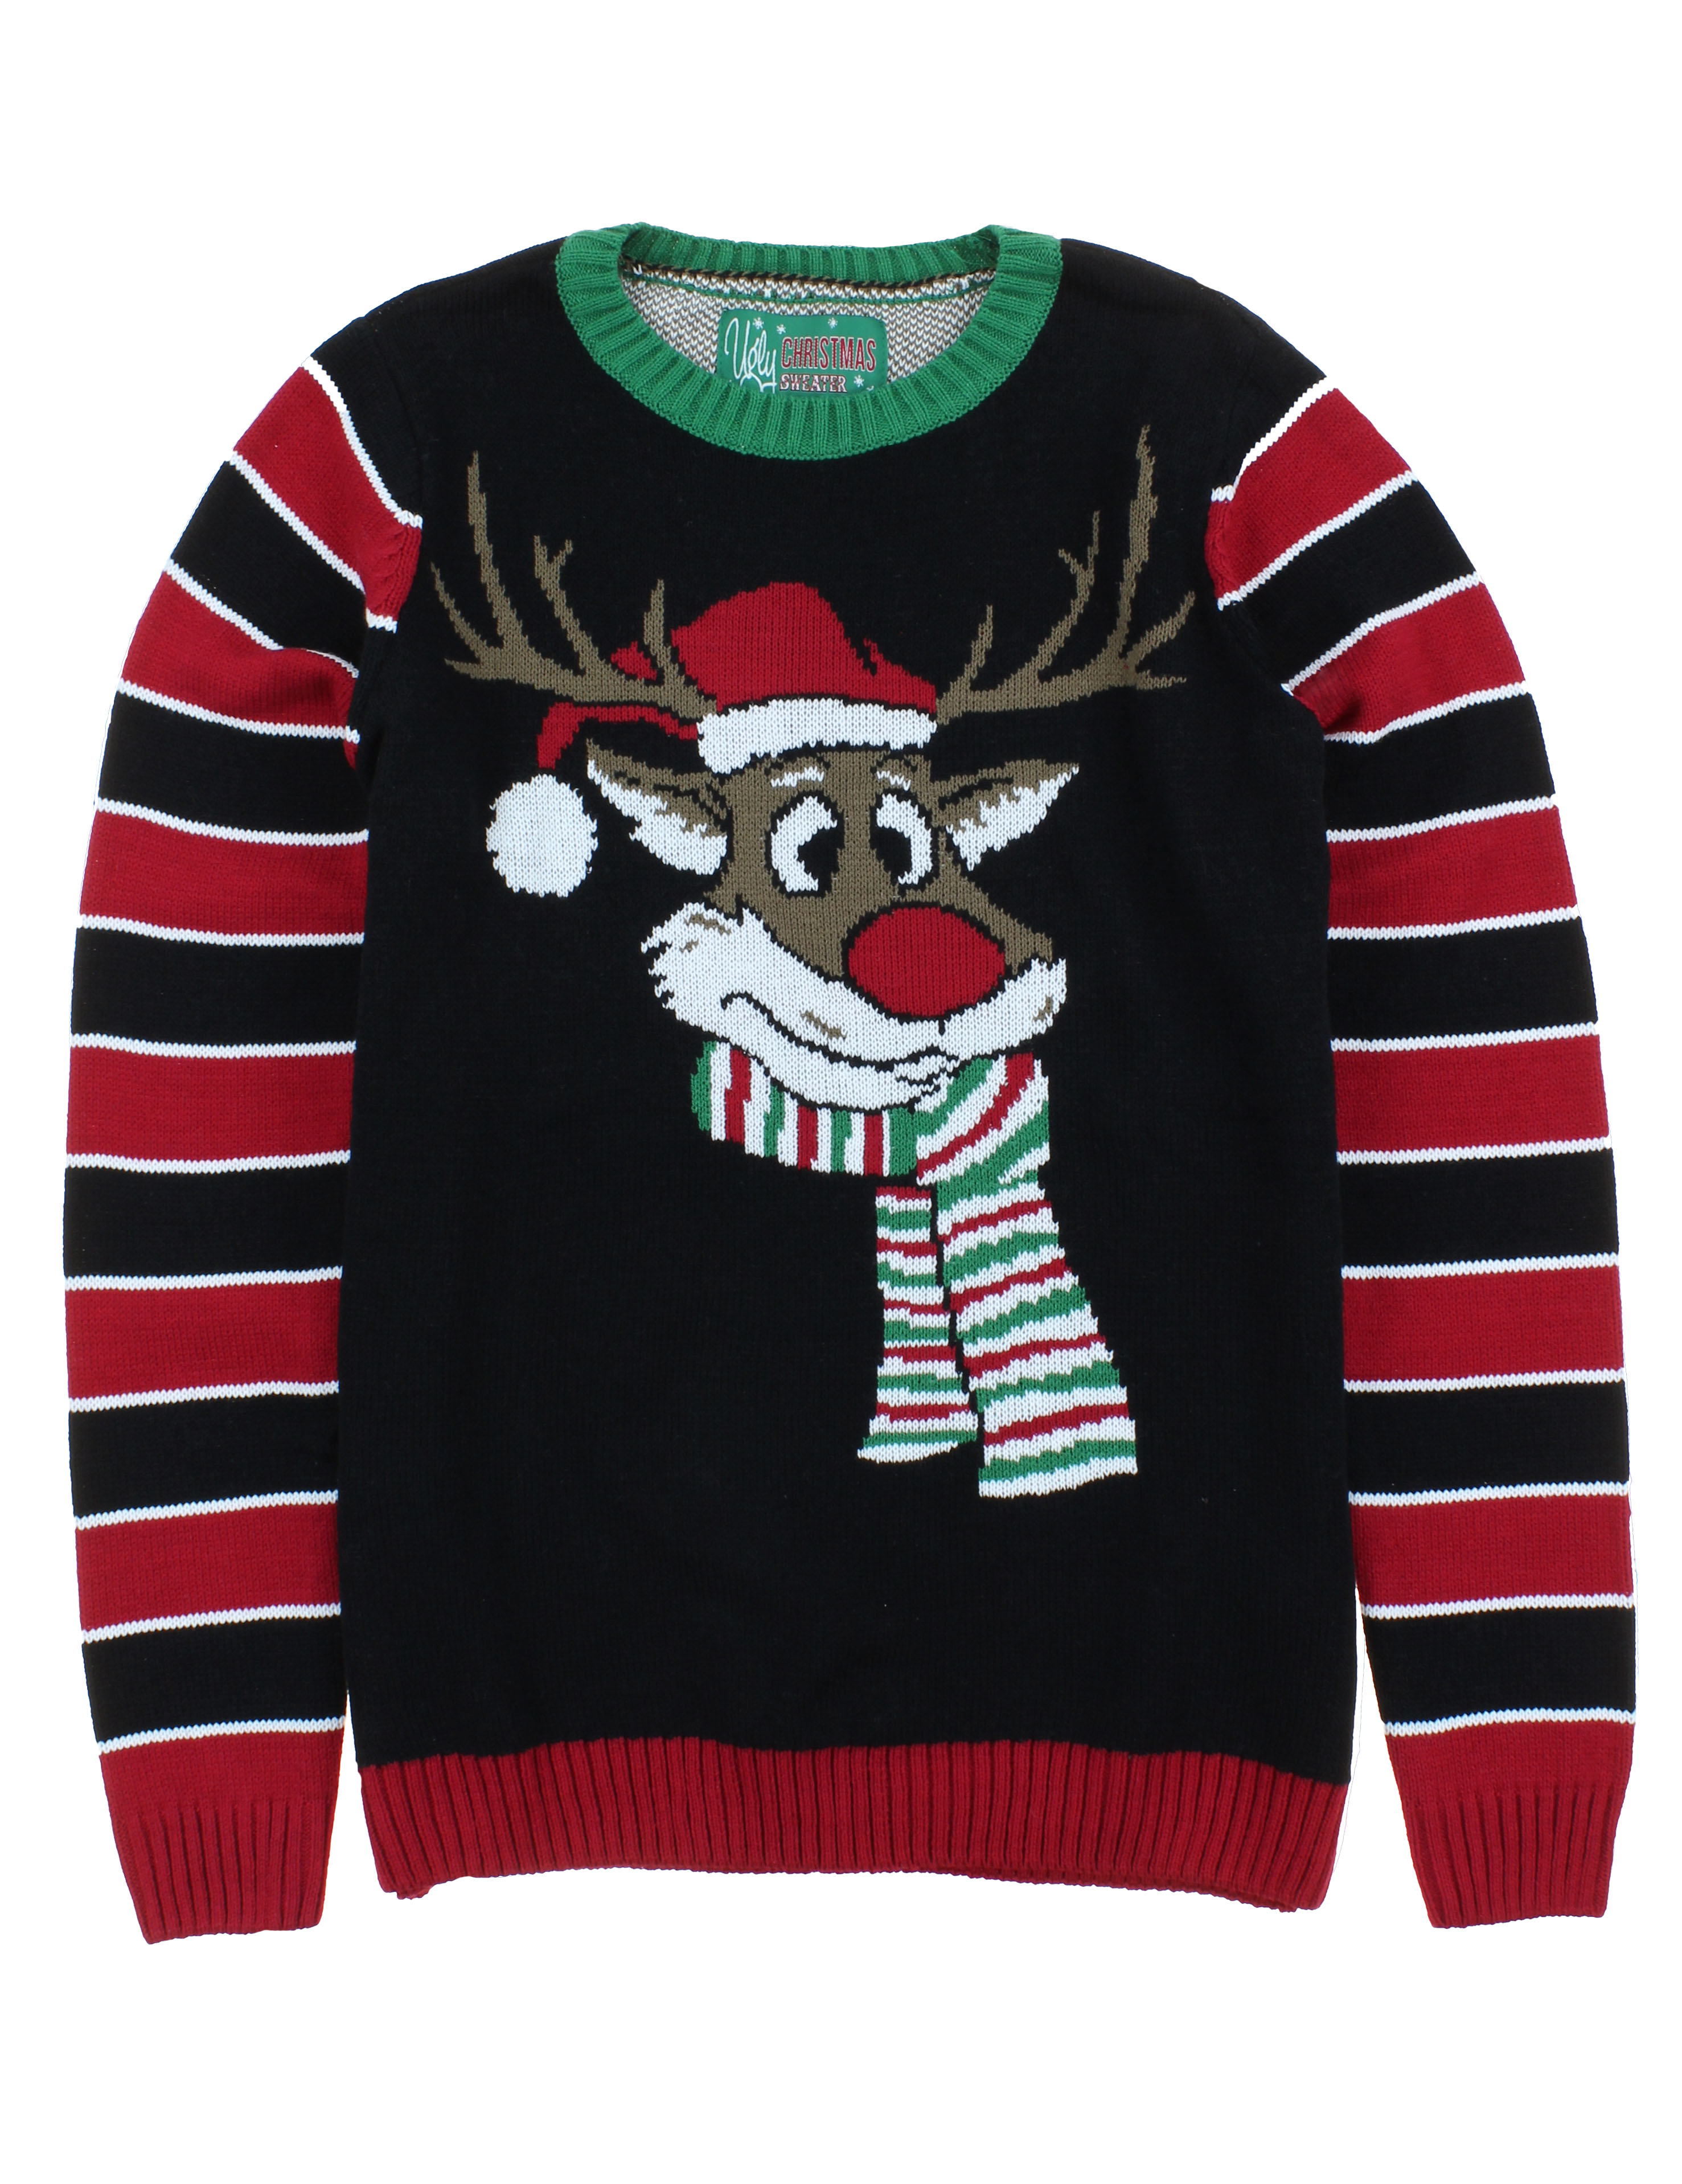 picture 3 of 12 - Black Ugly Christmas Sweater